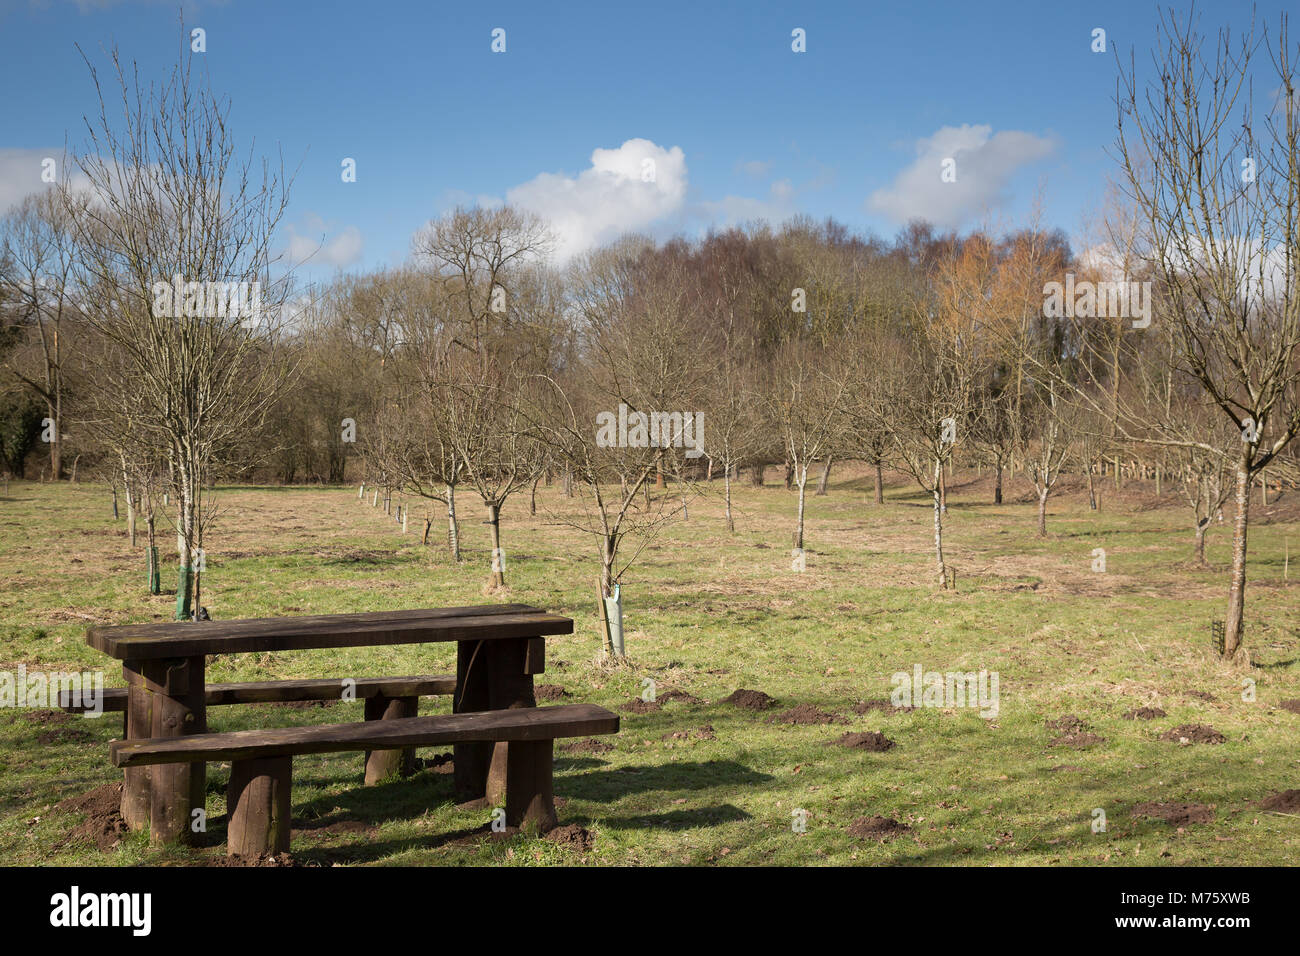 Empty picnic bench in sunny orchard area of public country park in Shropshire, UK, early March time. No people. - Stock Image